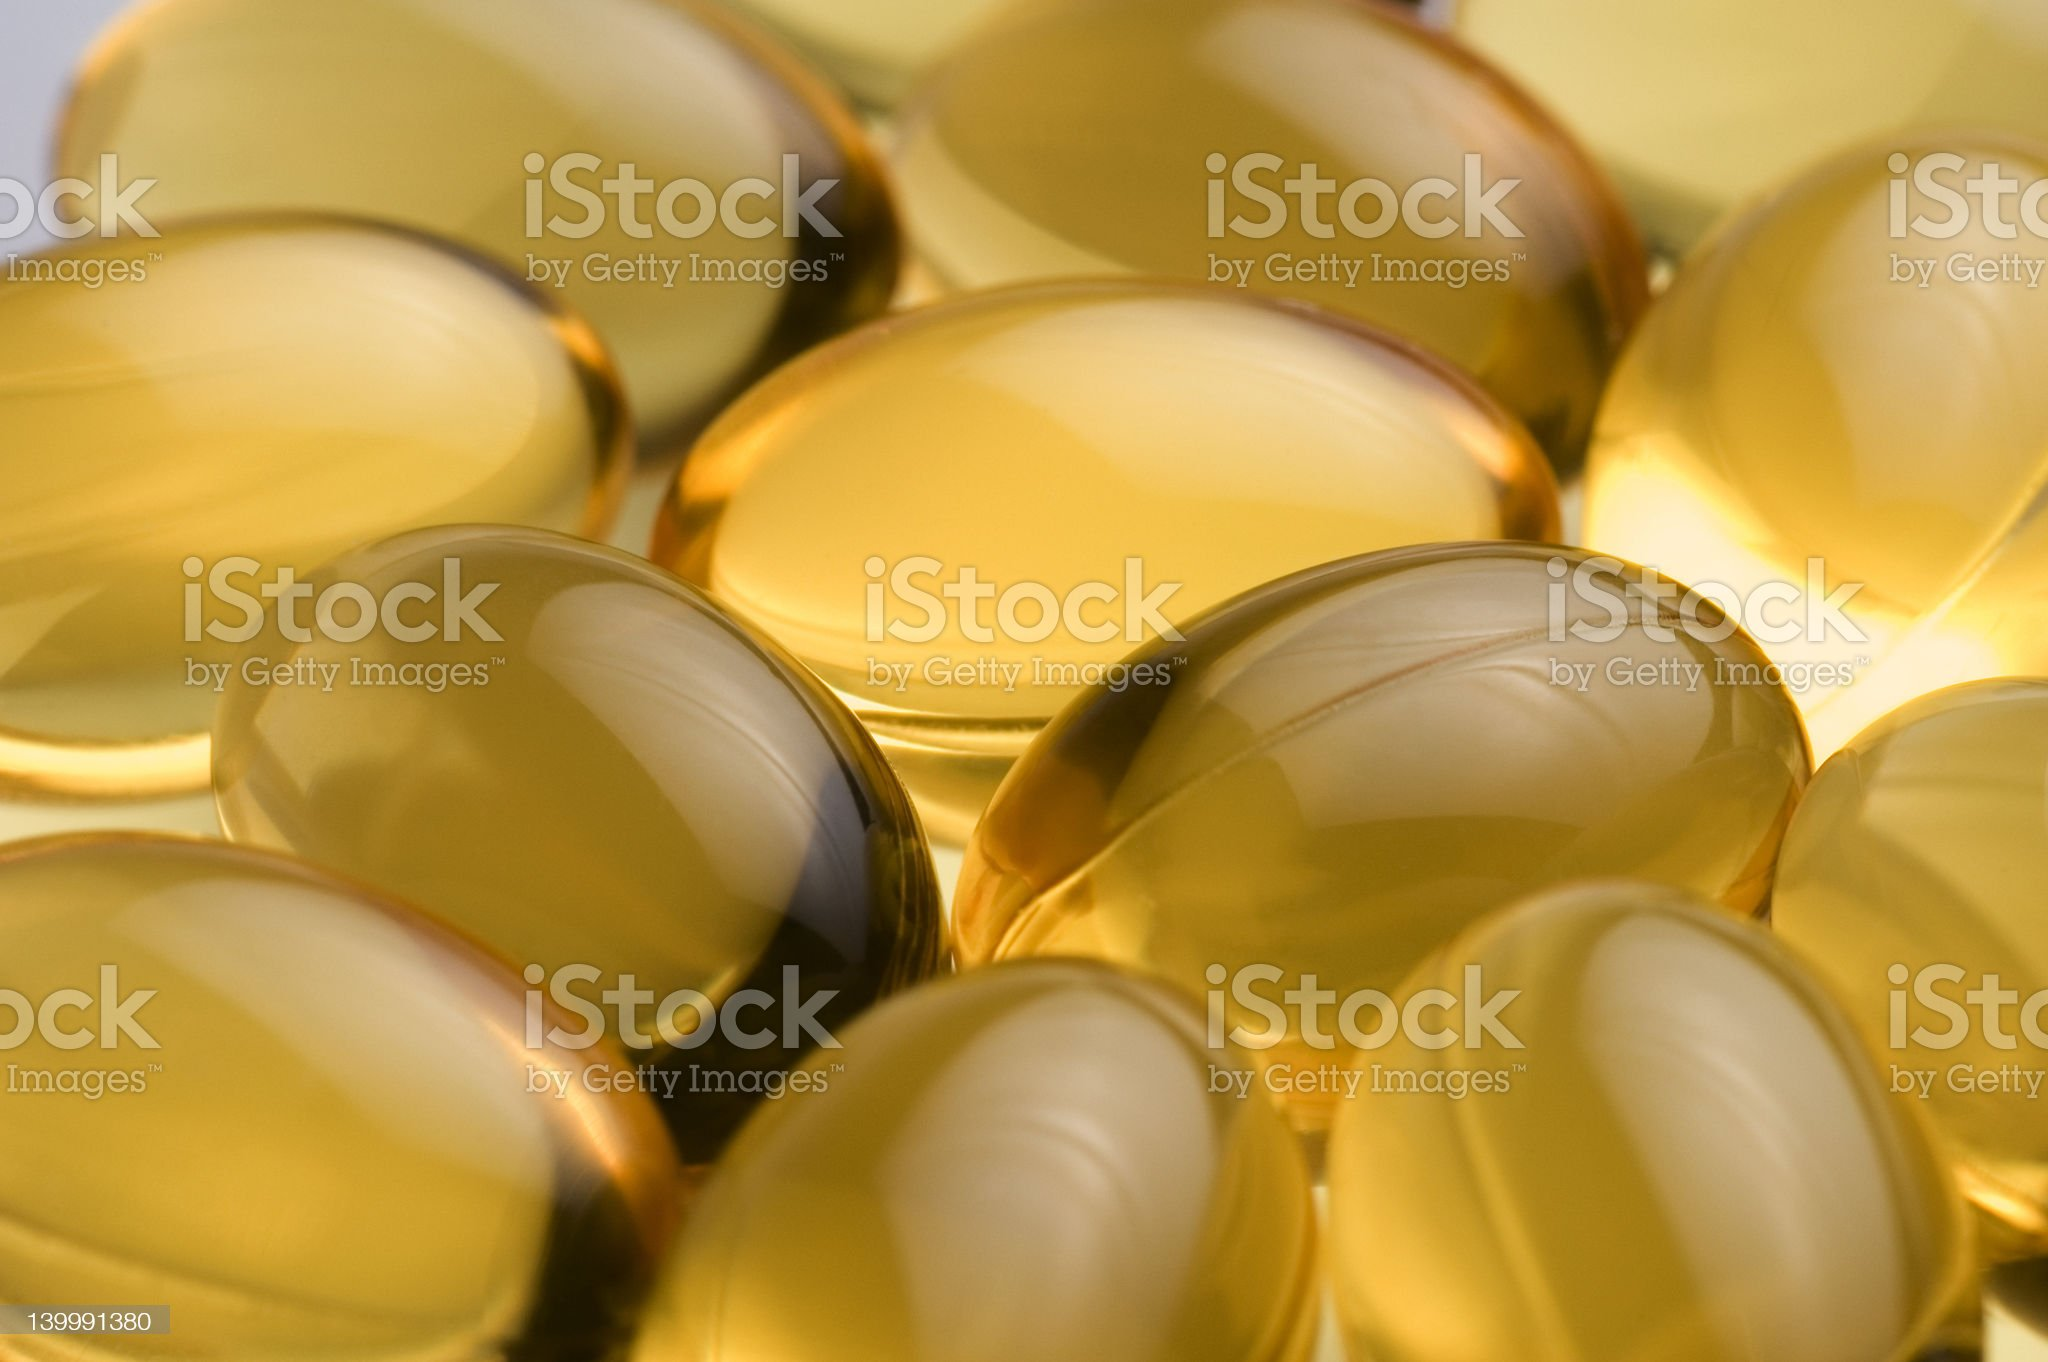 Cod liver oil royalty-free stock photo